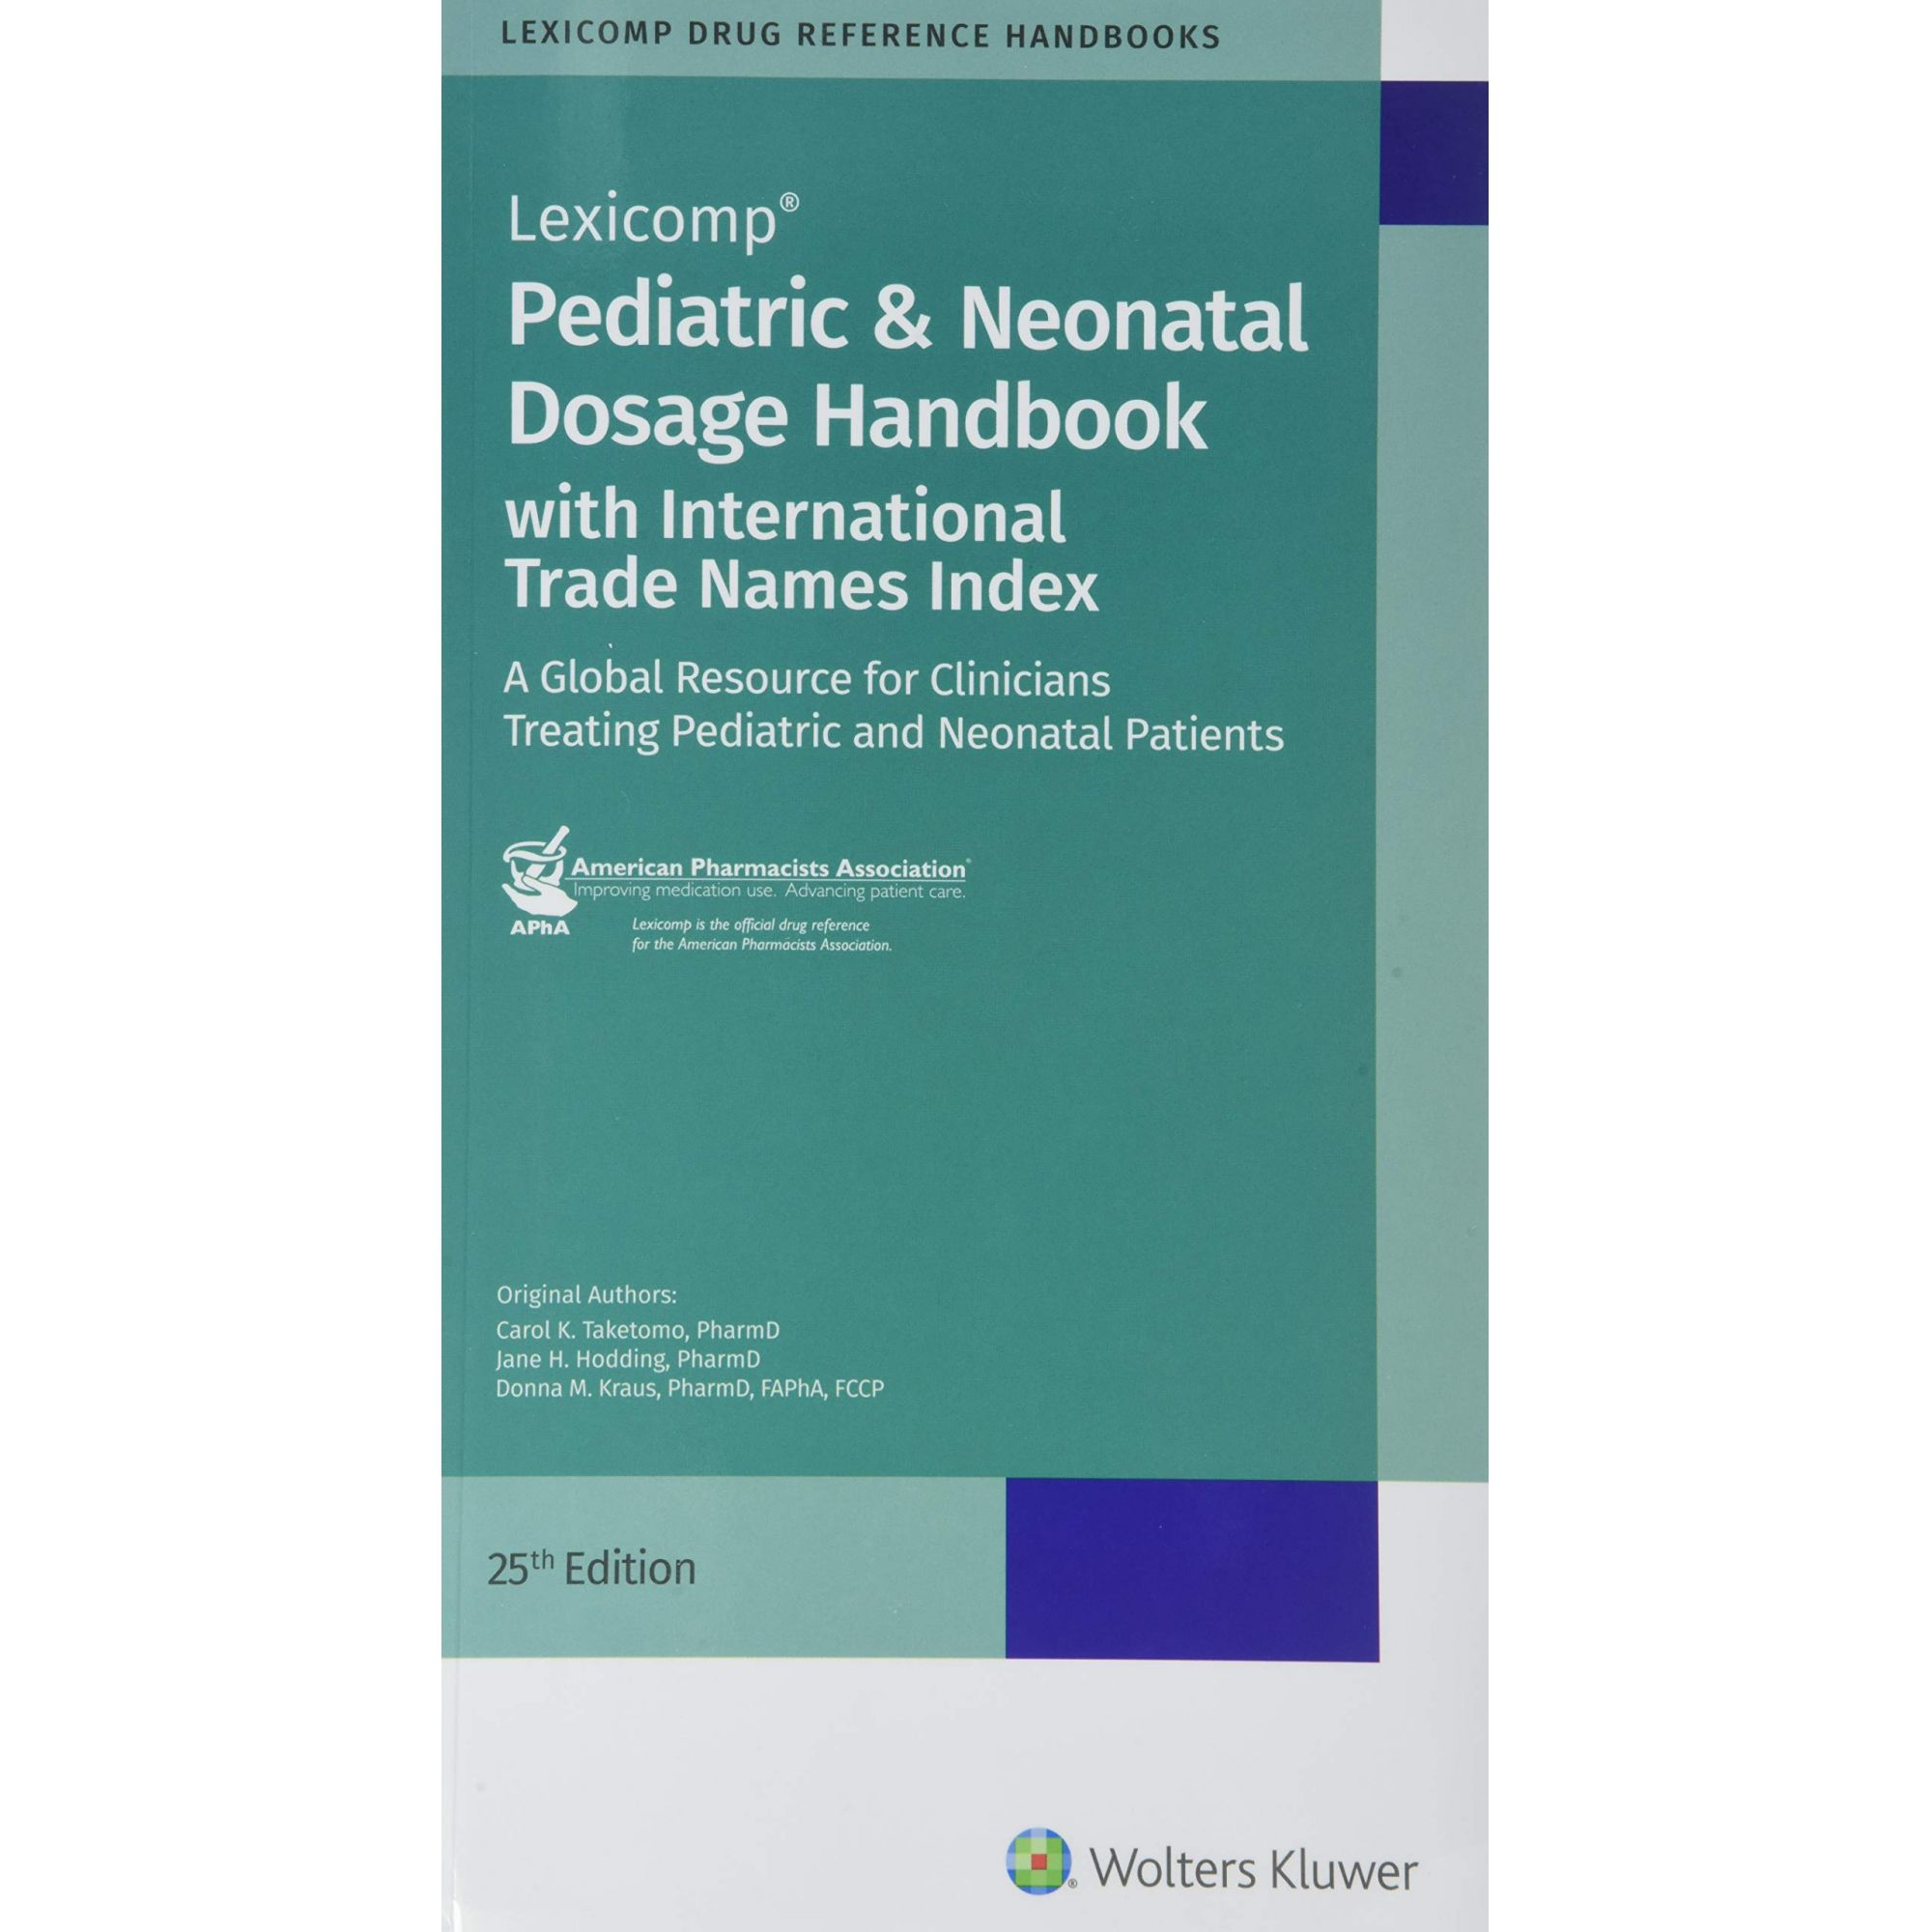 Livro Pediatric Neonatal Dosage Handbook With Trade Names Index